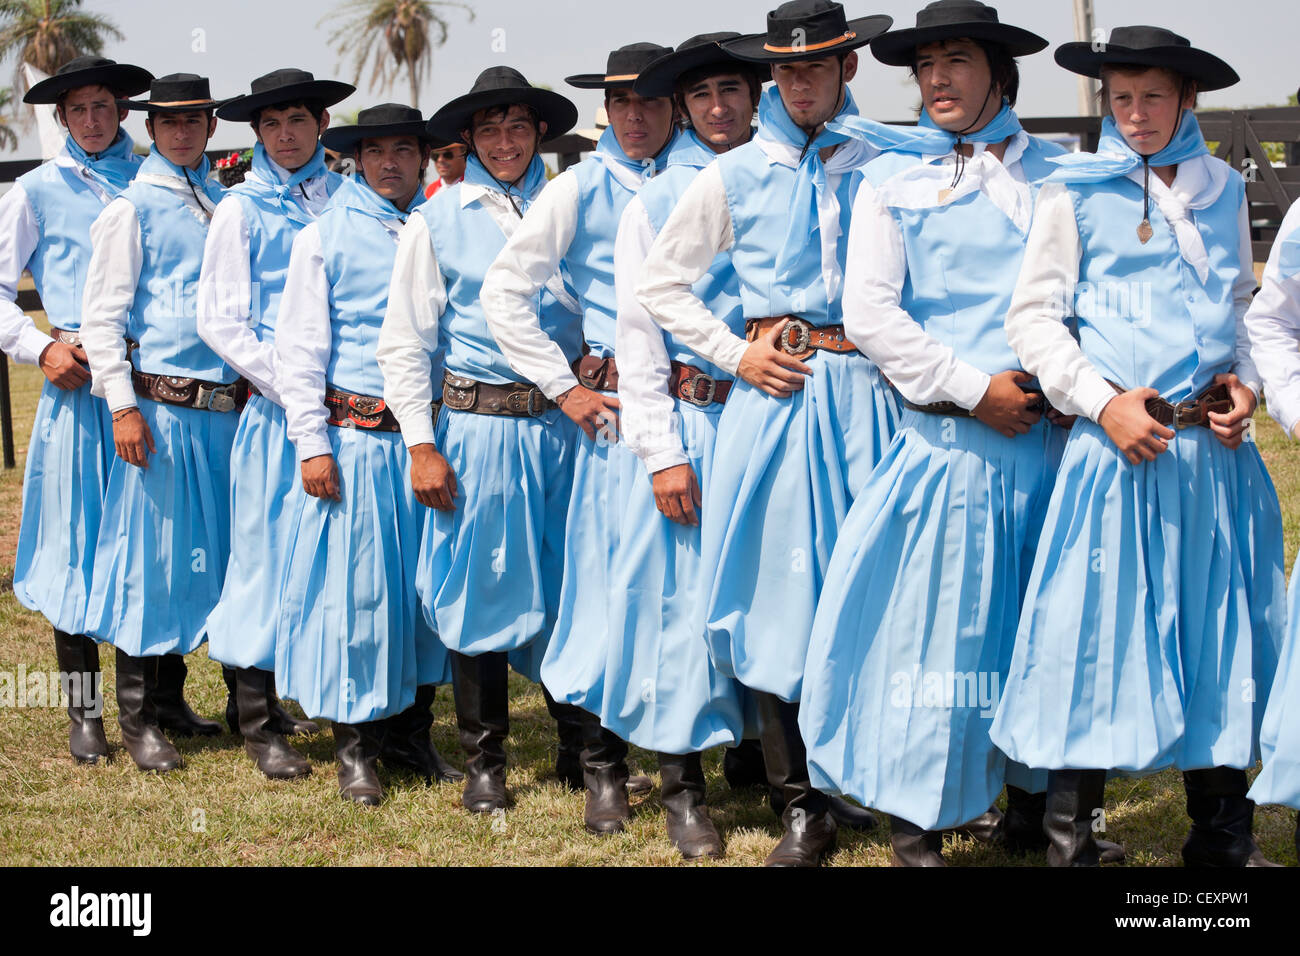 Festival Doma Folklore Paraguay Misiones Tacuaty - Stock Image